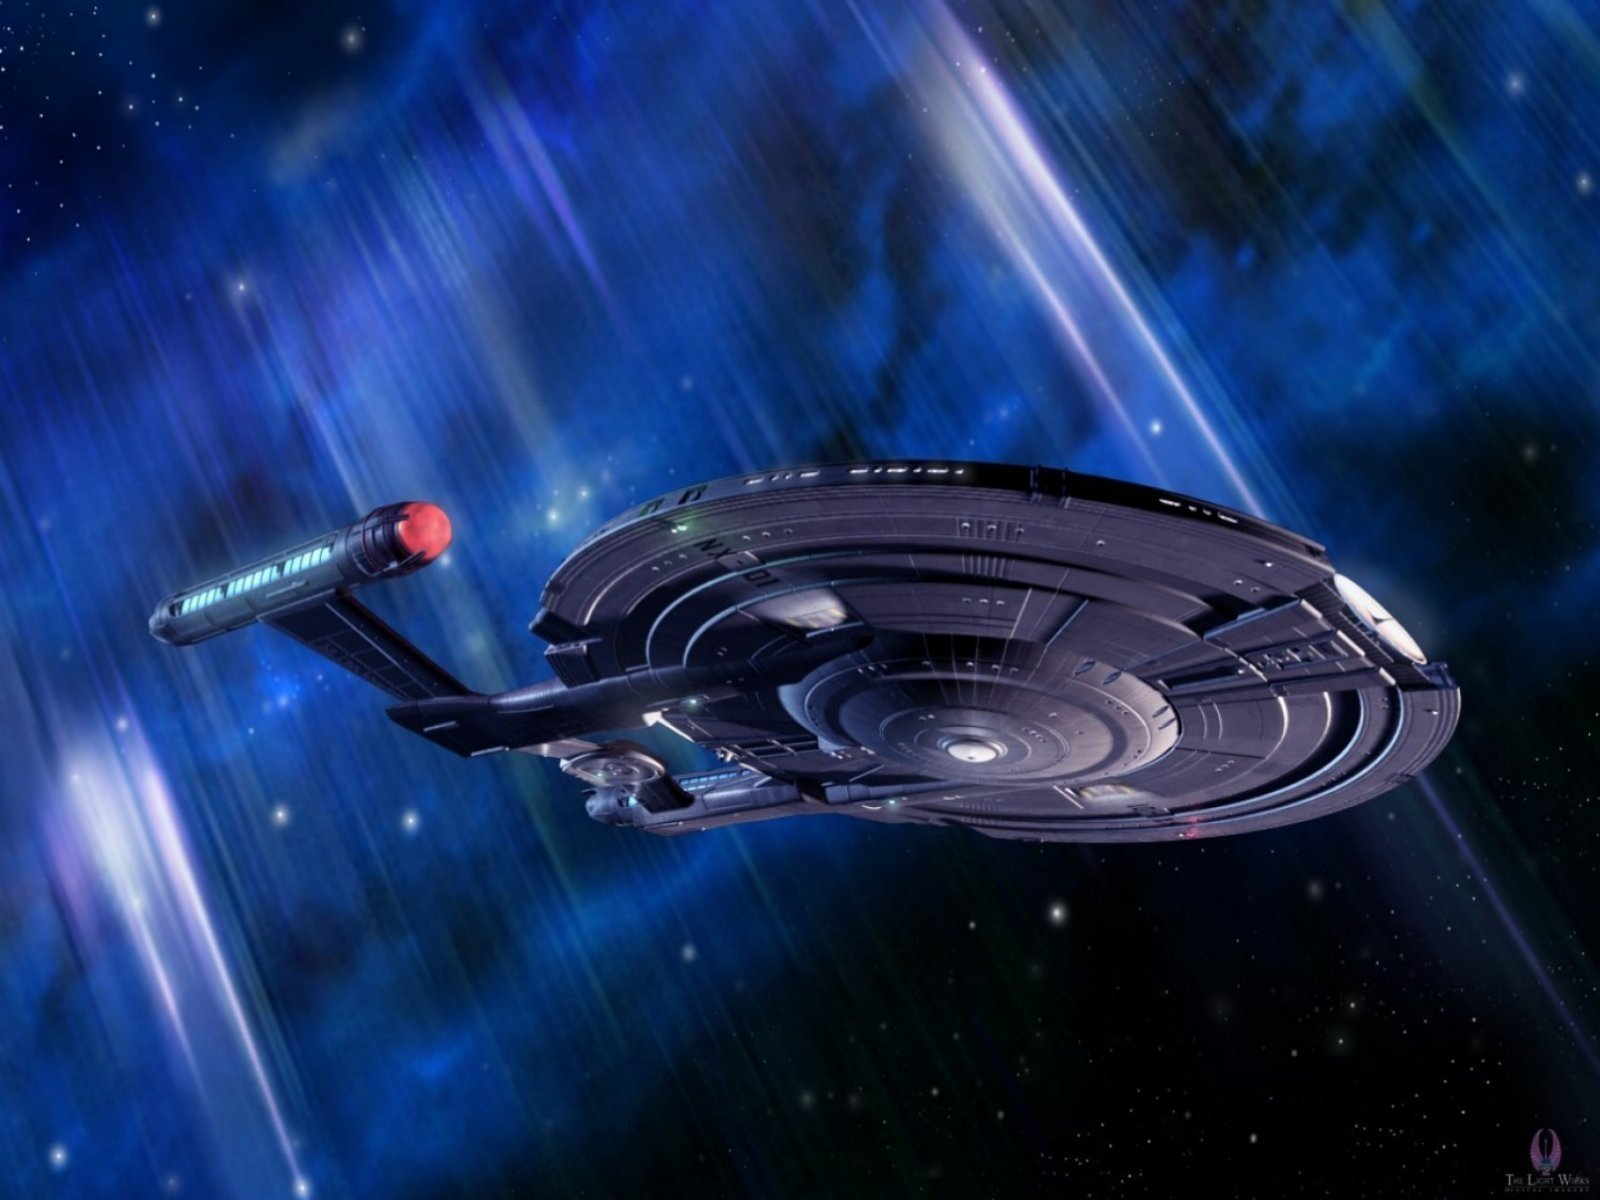 Sci Fi - Star Trek  Enterprise (Star Trek) Wallpaper